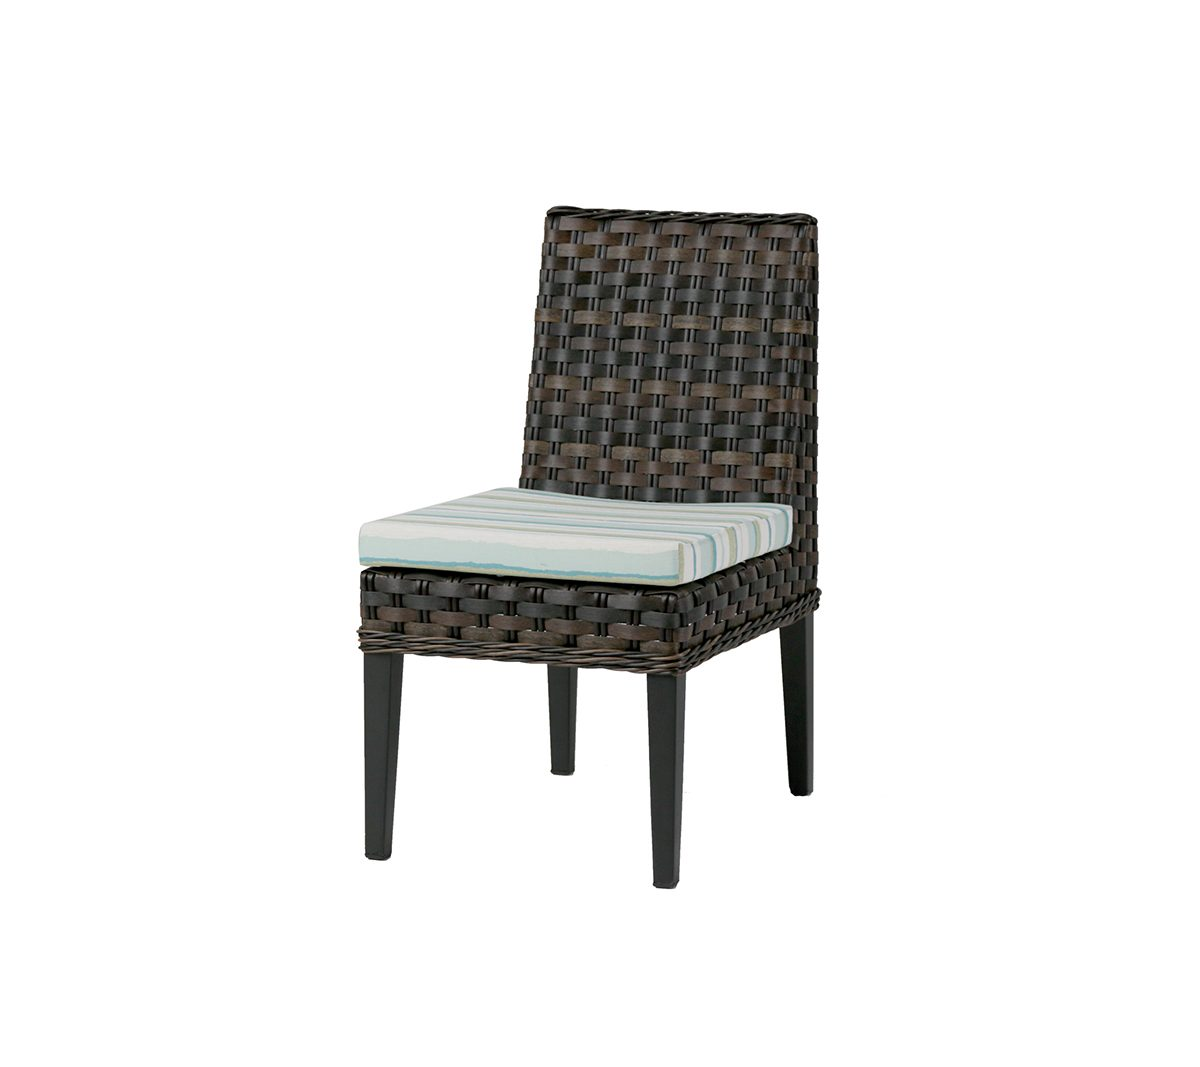 San Sebastian side chair in brown wicker with striped seat cushion.